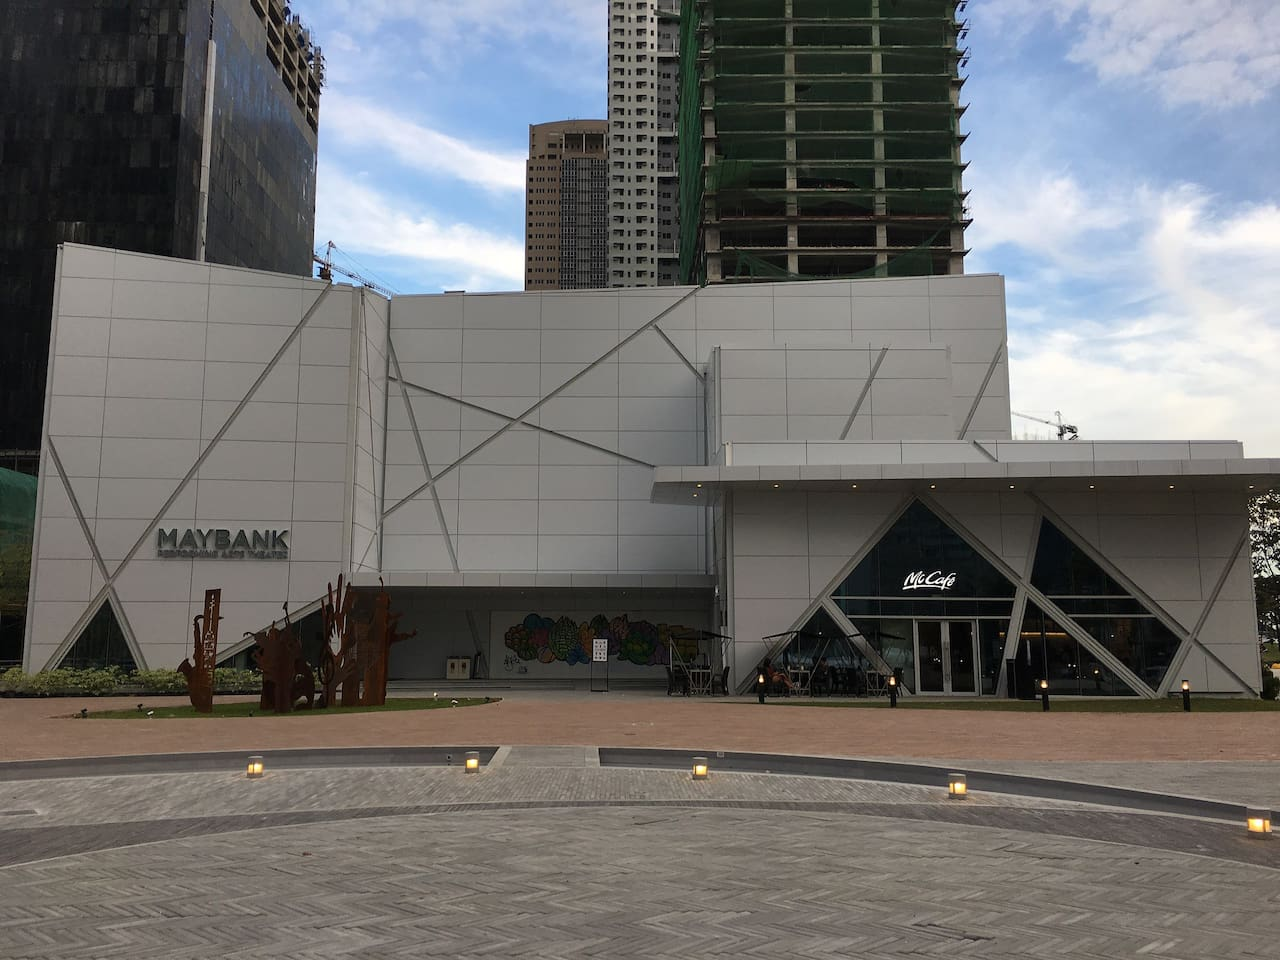 you can watch at this Maybank Performing Arts and Theater by walking across the building